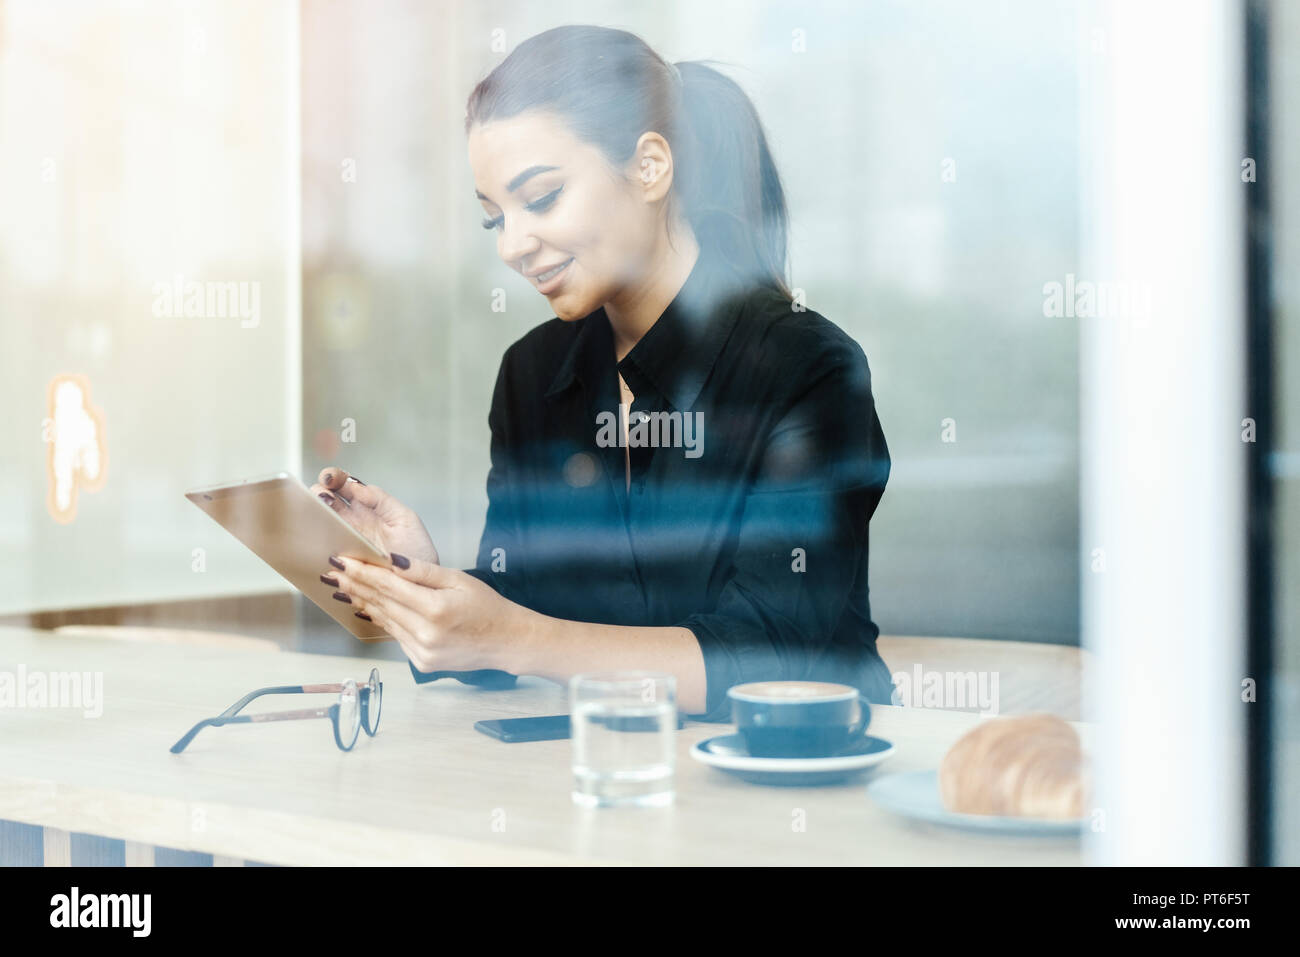 Close up of young beautiful brunette woman in cafe holding tablet and smiling. - Stock Image